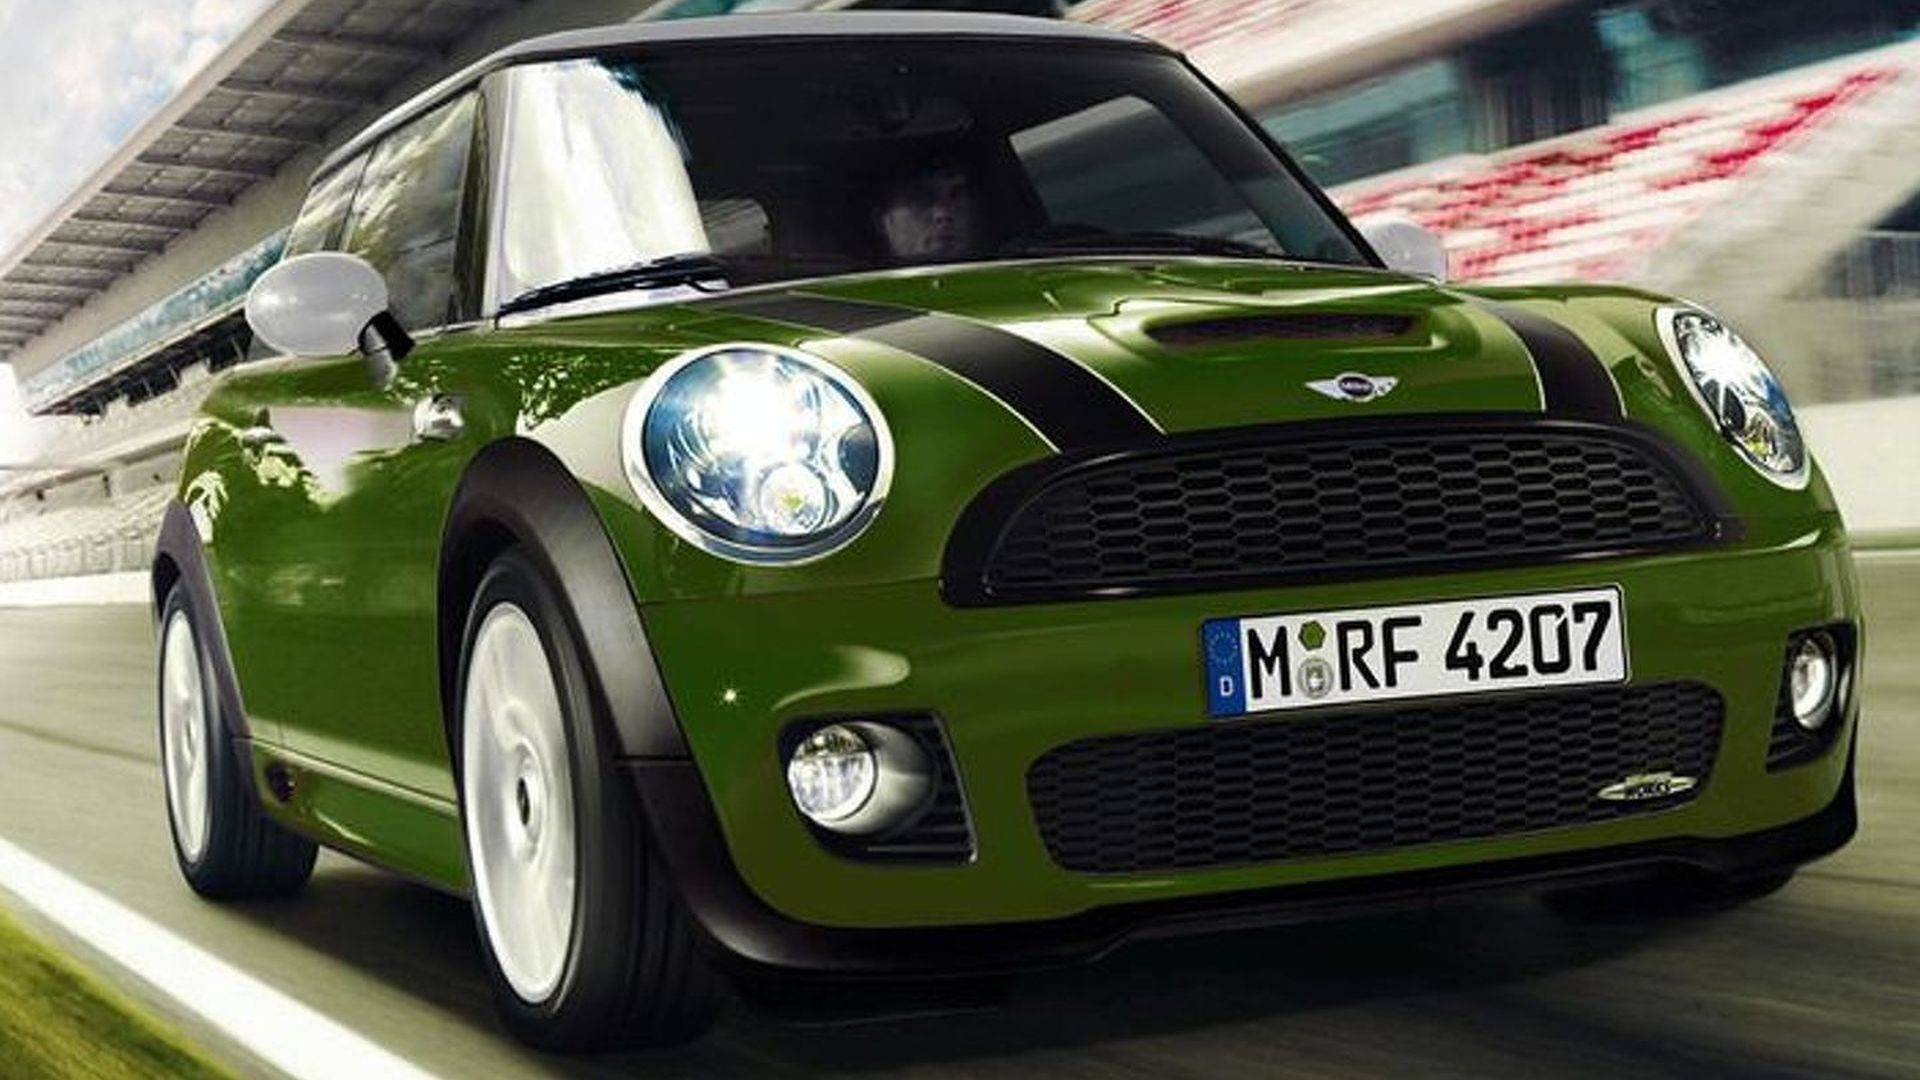 Mini Cooper JCW F1 Special Edition in the Works?